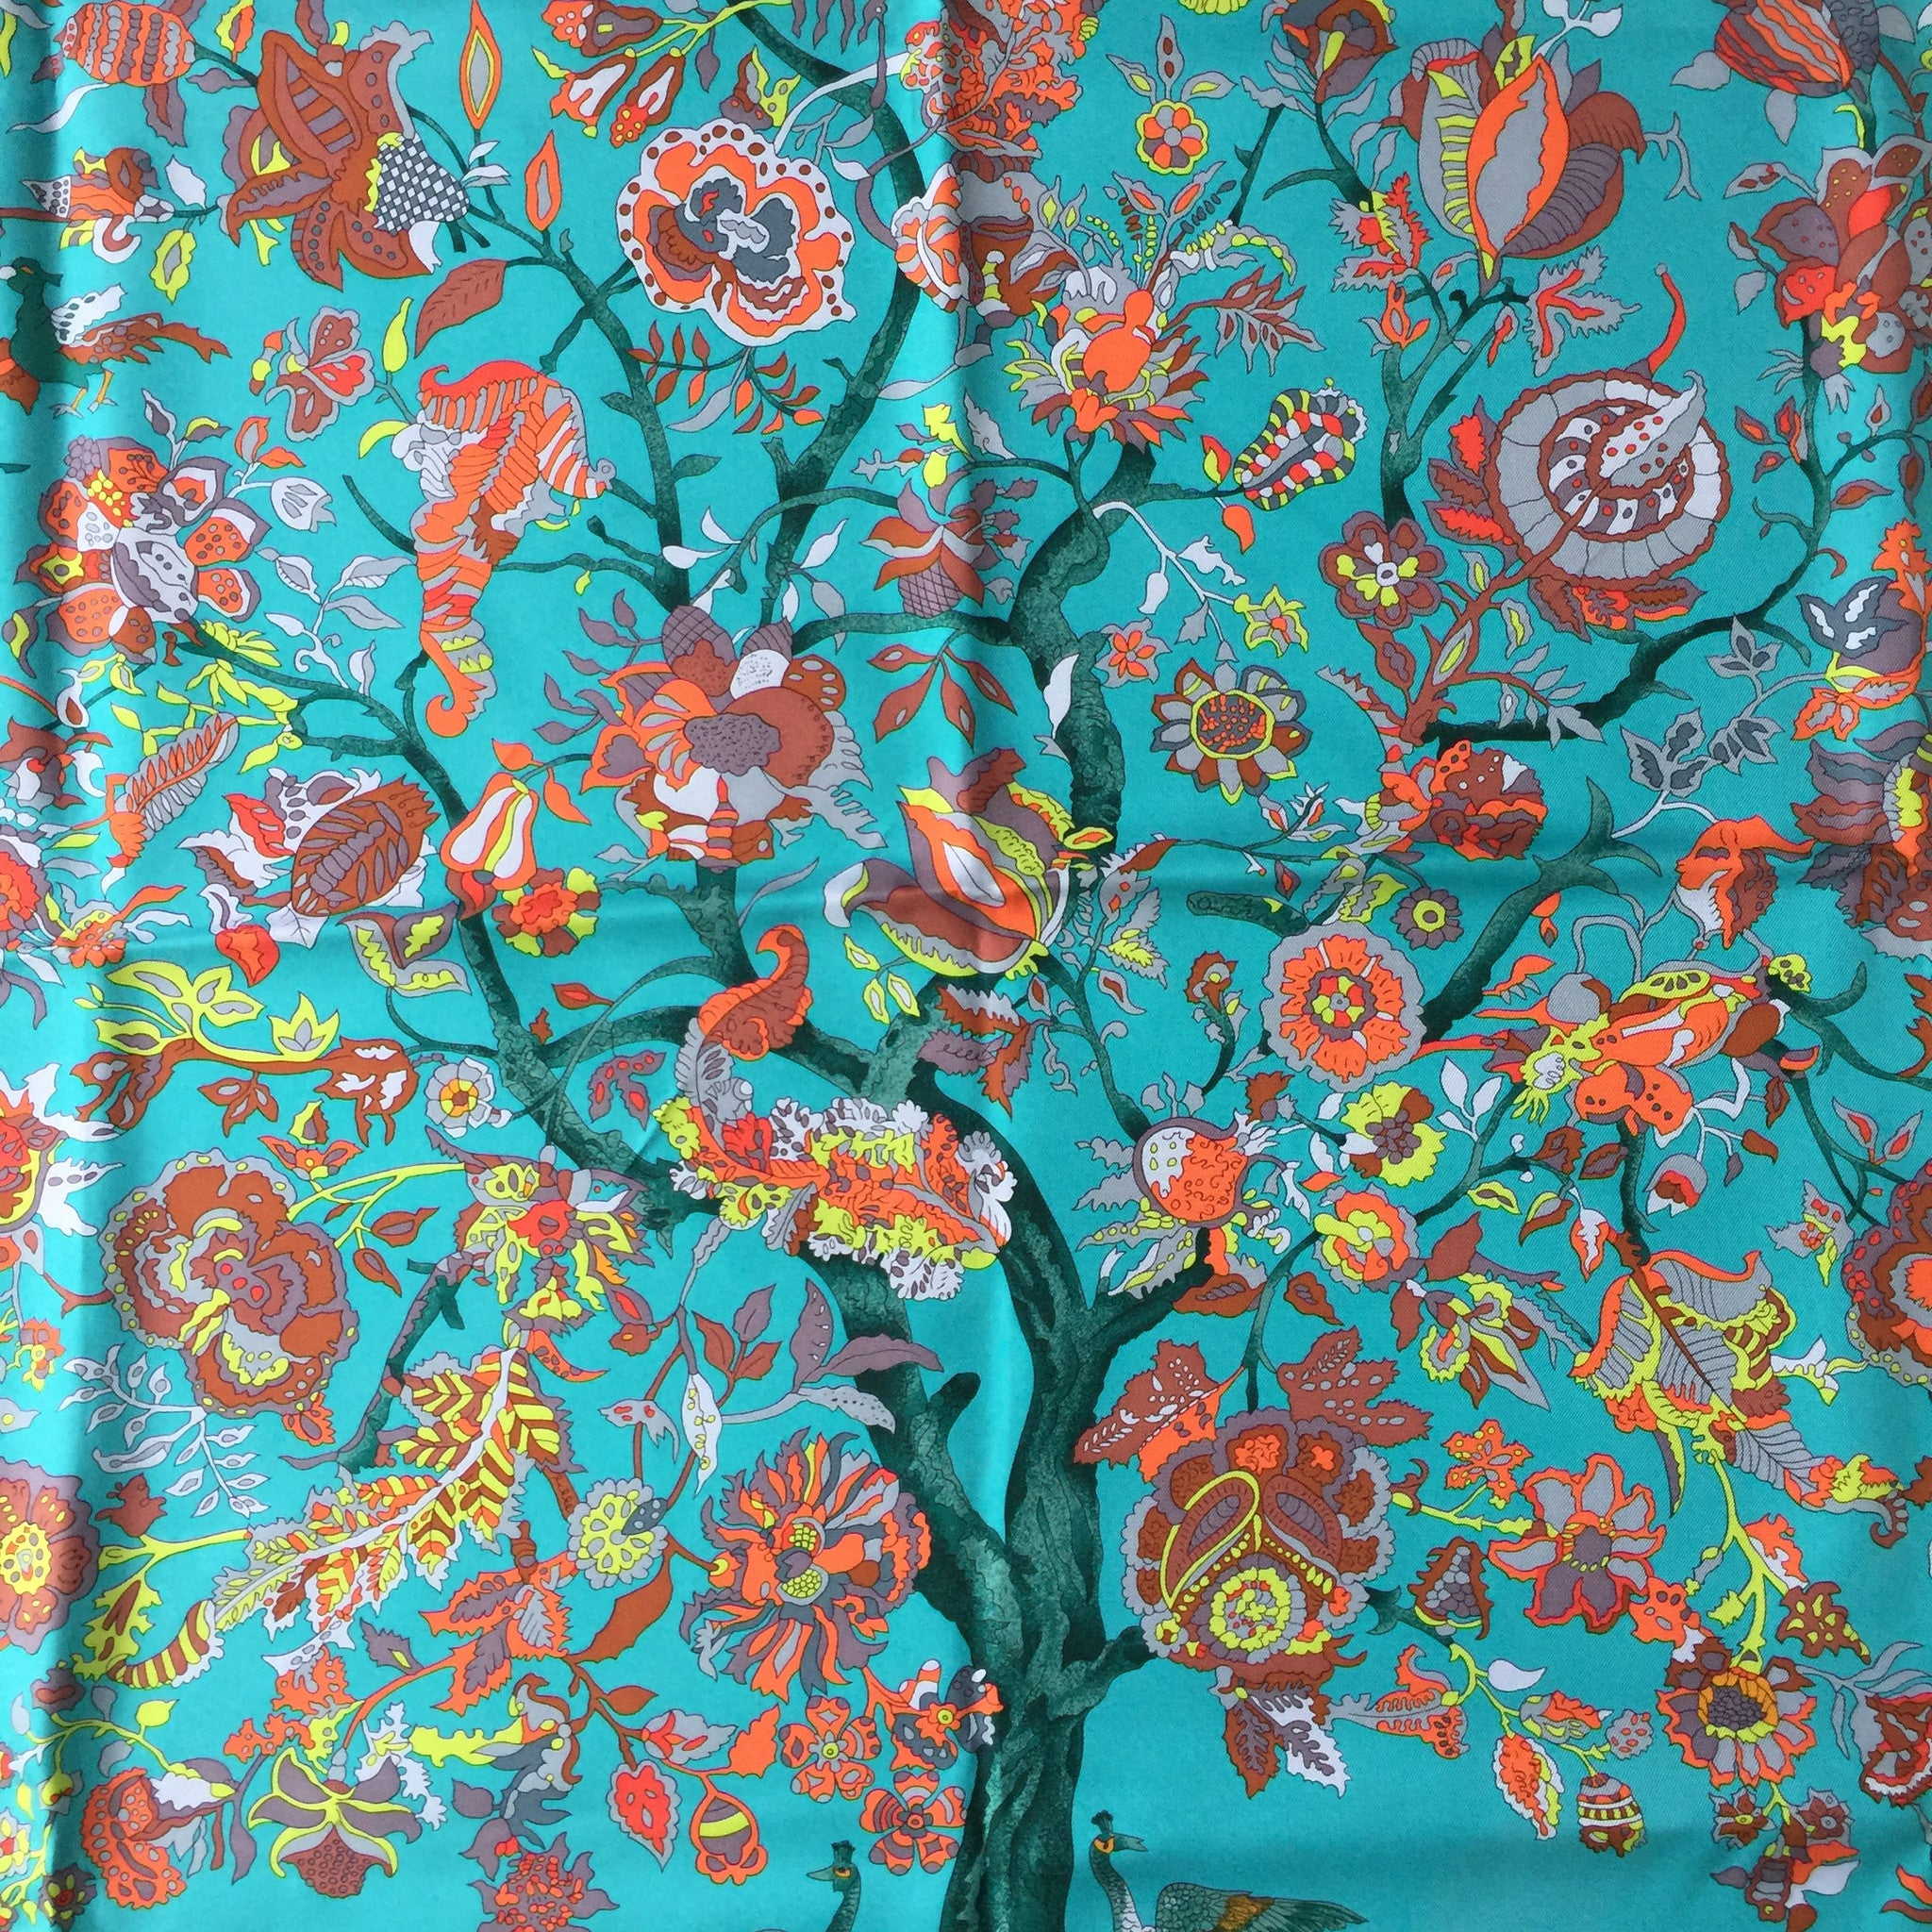 Authentic HERMES Fantaisies Indiennes Silk Scarf